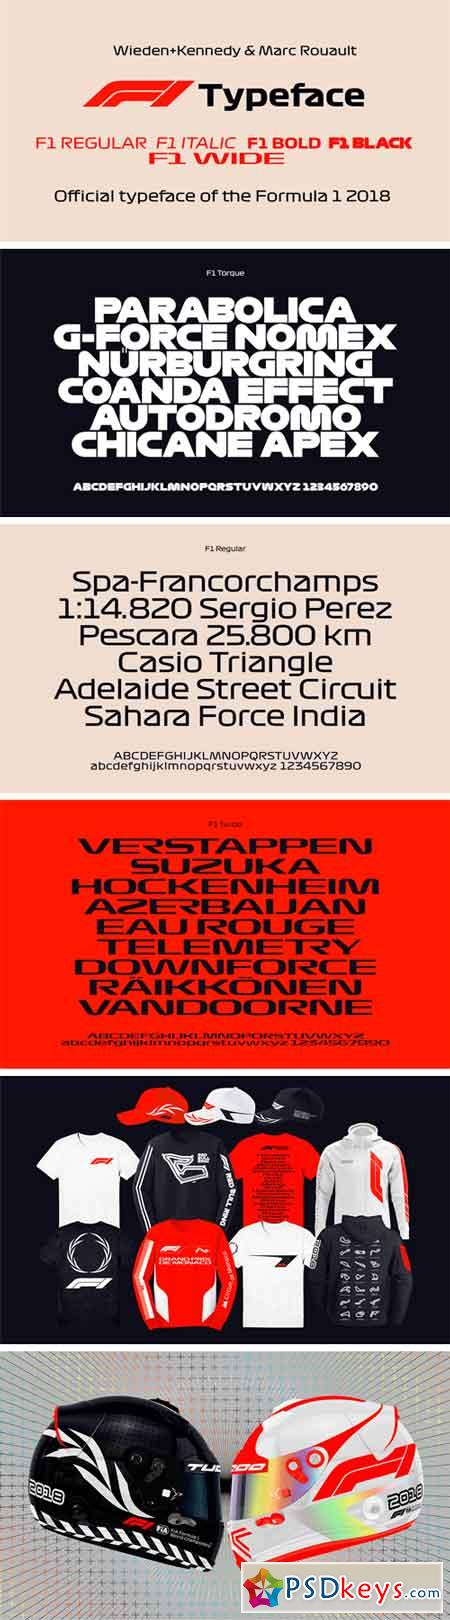 Formula 1 Display - Official Typeface of the Formula 1 2018